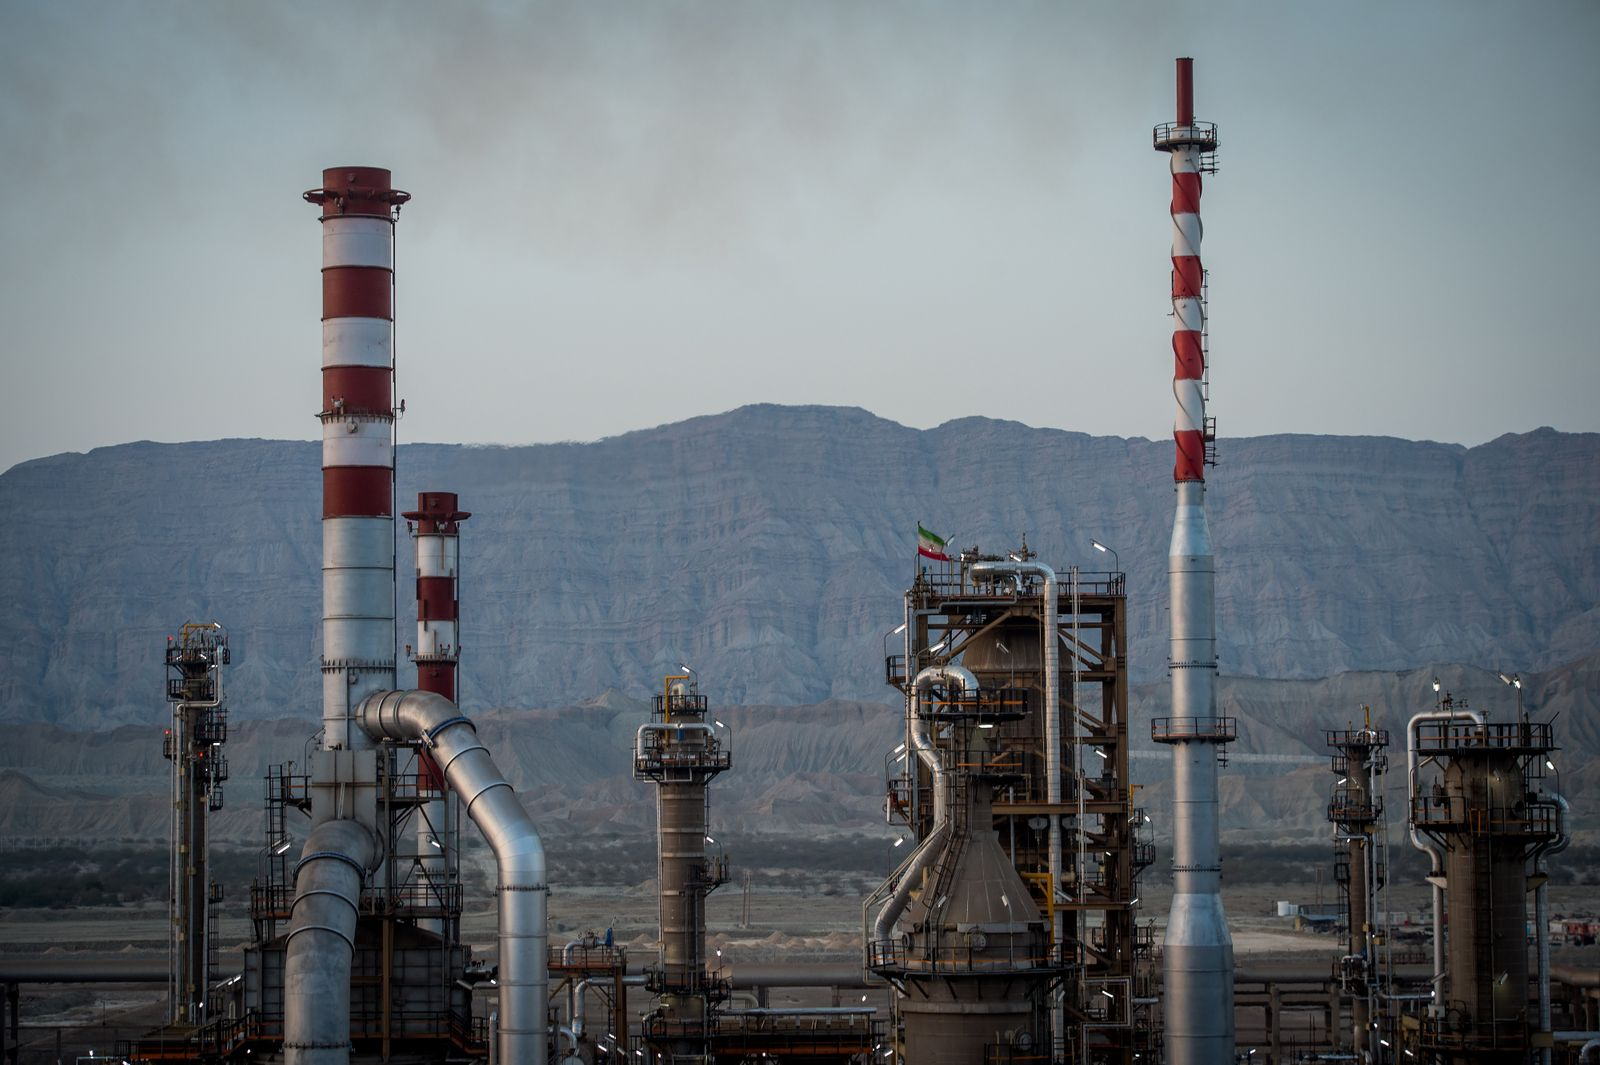 Iran To Meet Own Gasoline Needs After Persian Gulf Star Refinery Expansion